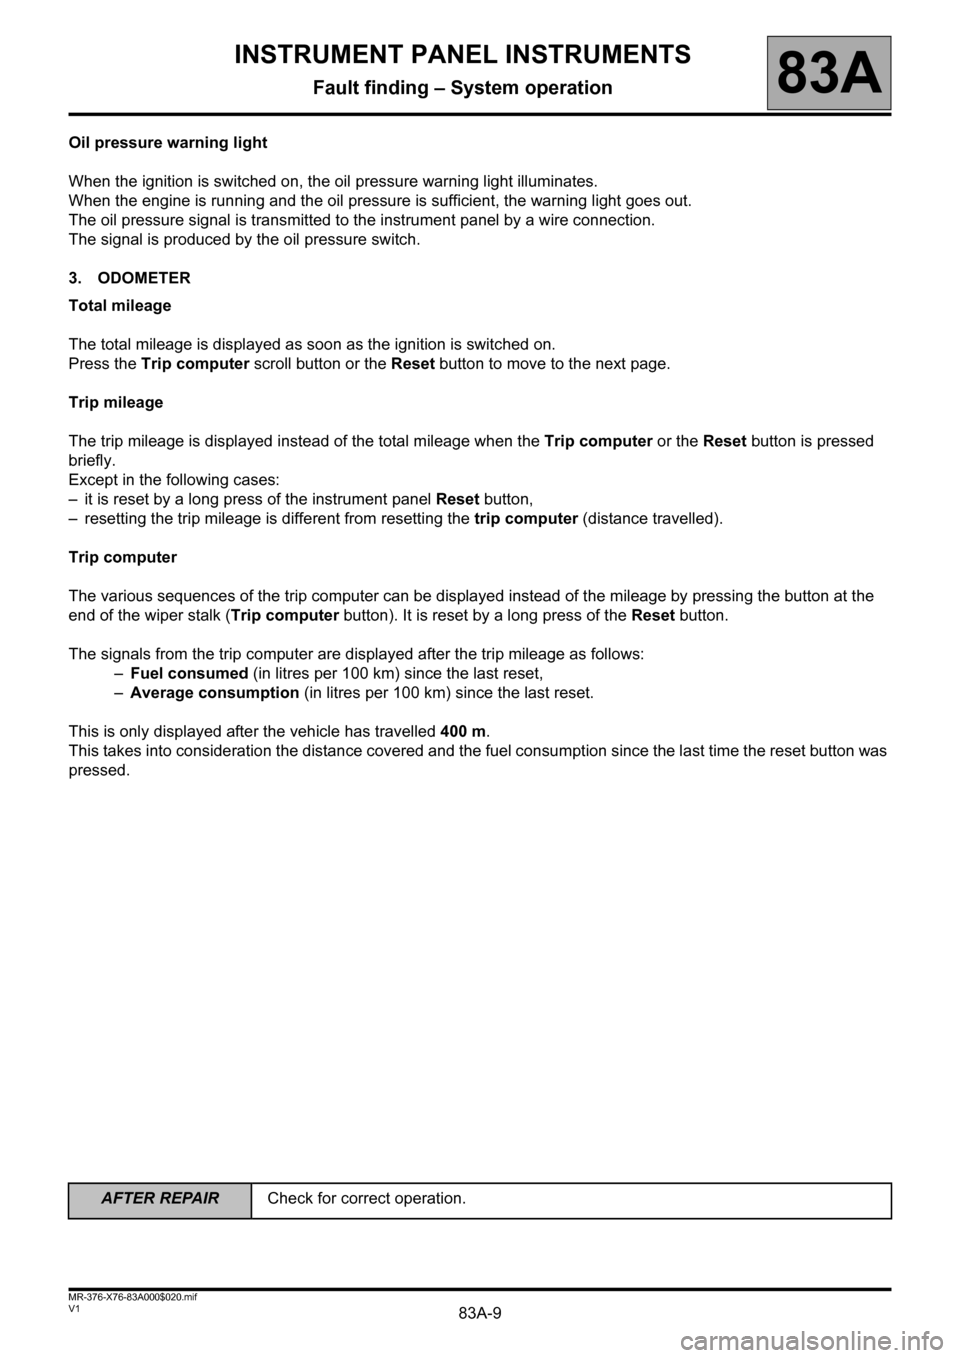 RENAULT KANGOO 2013 X61 / 2.G Instrument Panel Instruments Workshop Manual, Page 9